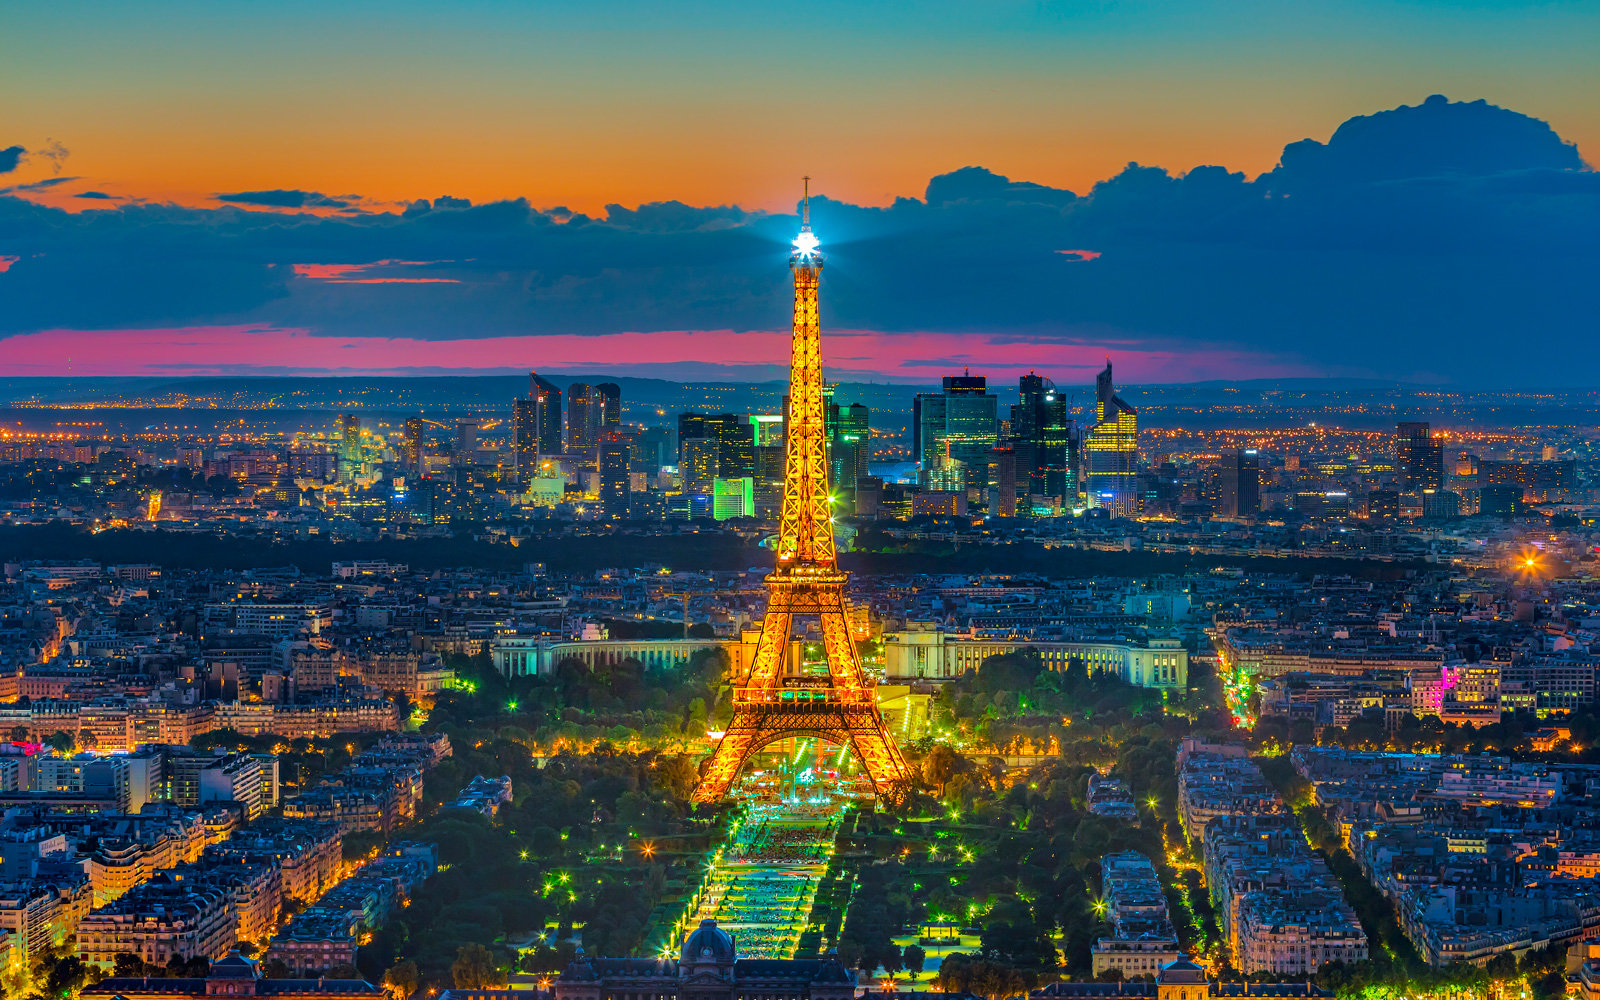 A view of the Eiffel Tower from Montparnasse.